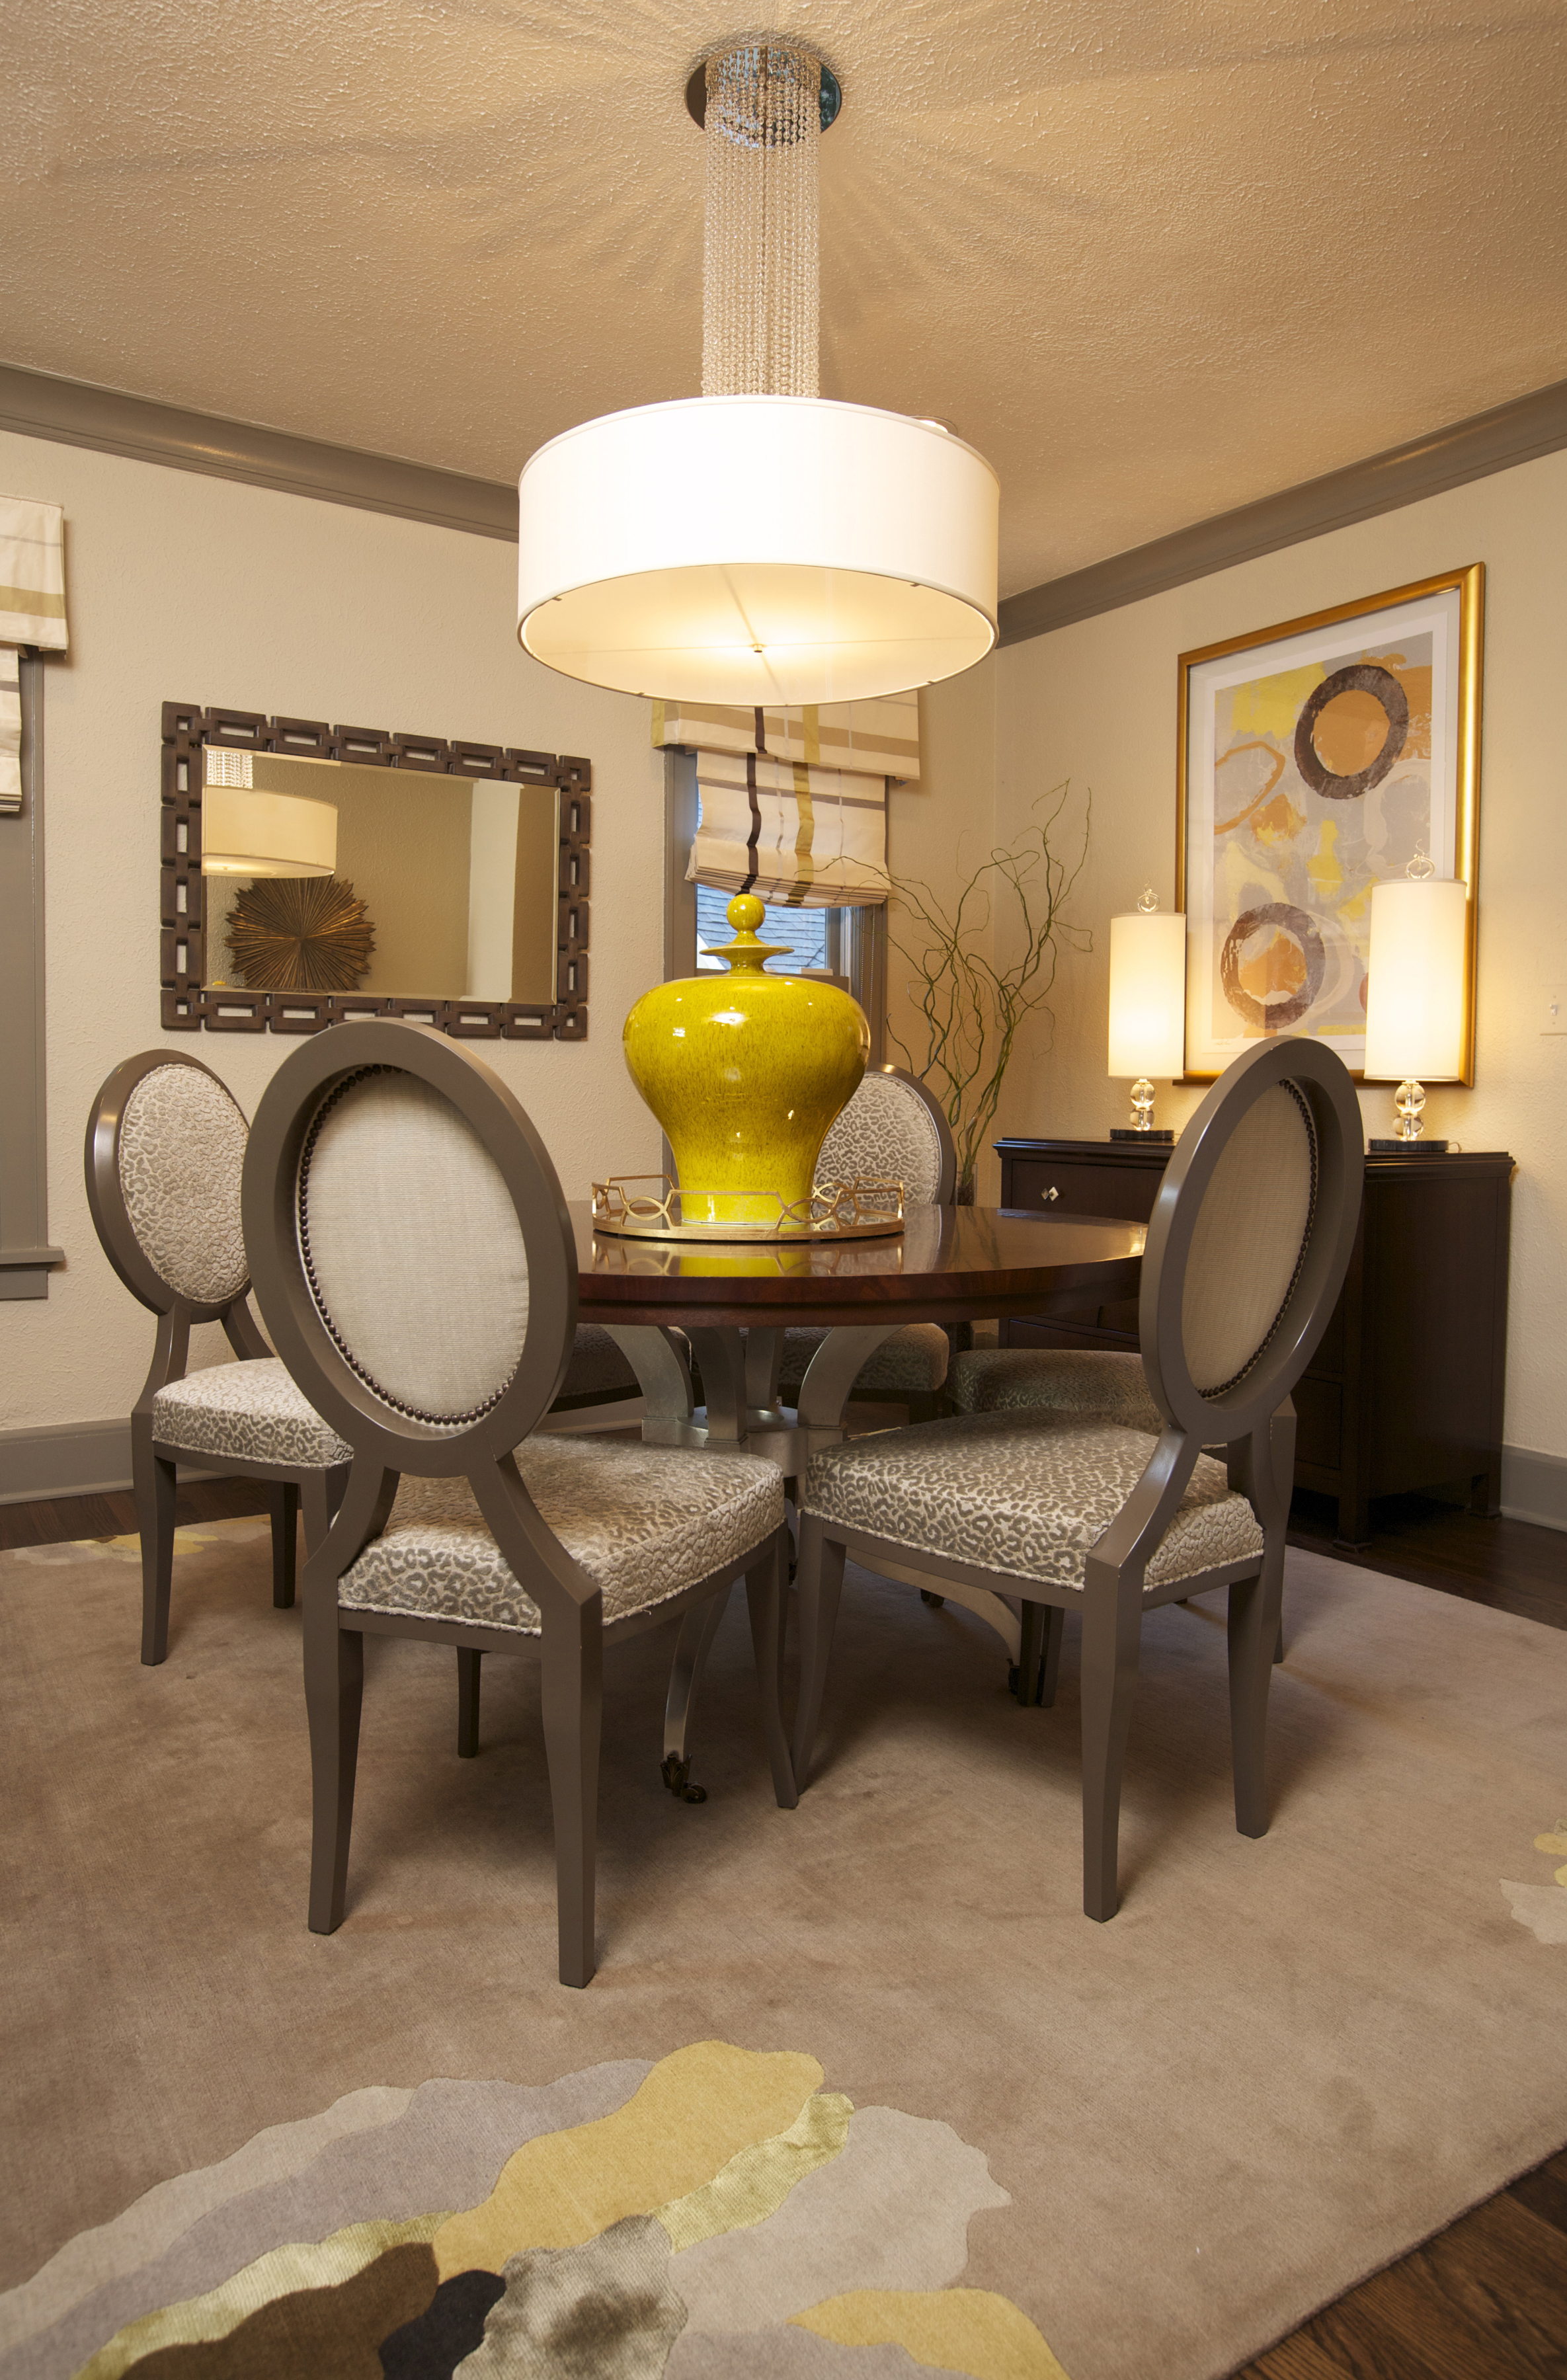 Luxury Hanging Lamp For Formal Round Dining Room (Image 14 of 20)